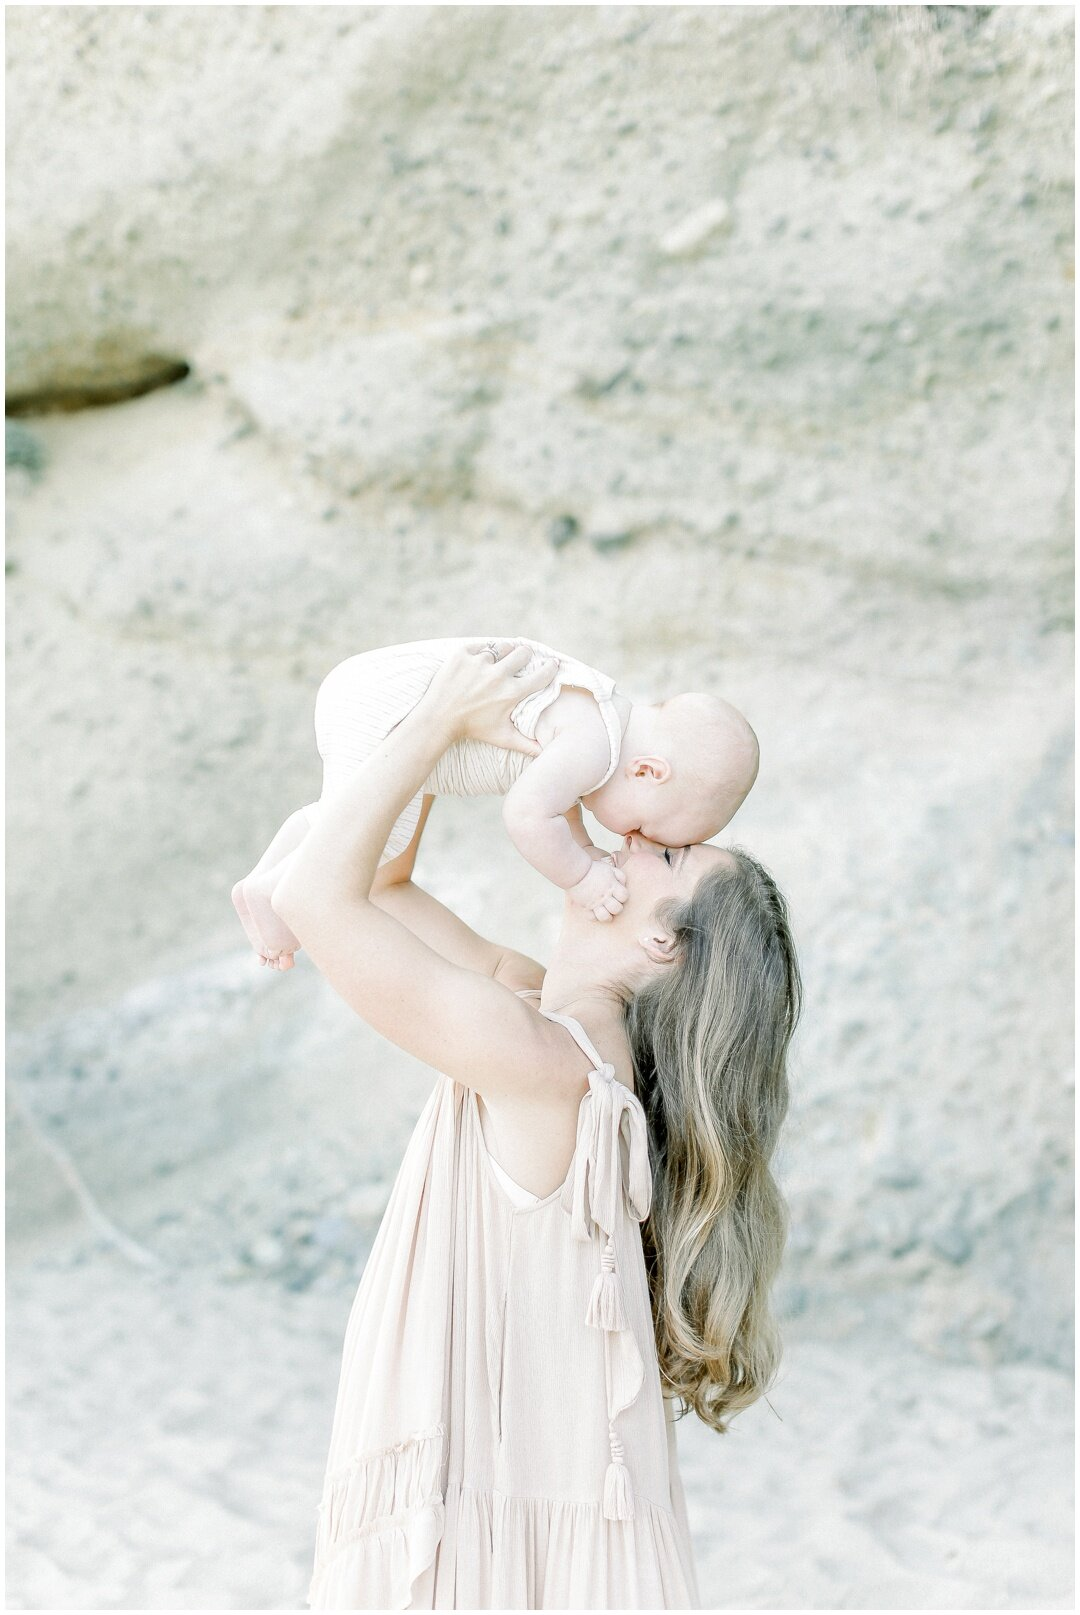 Newport+Beach+Newborn+Maternity+Photographer+Orange+County+Family+Photographer+Cori+Kleckner+Photography+Forgatch+Family+Matt+Kelley+Jack+Forgatch+_4421.jpg